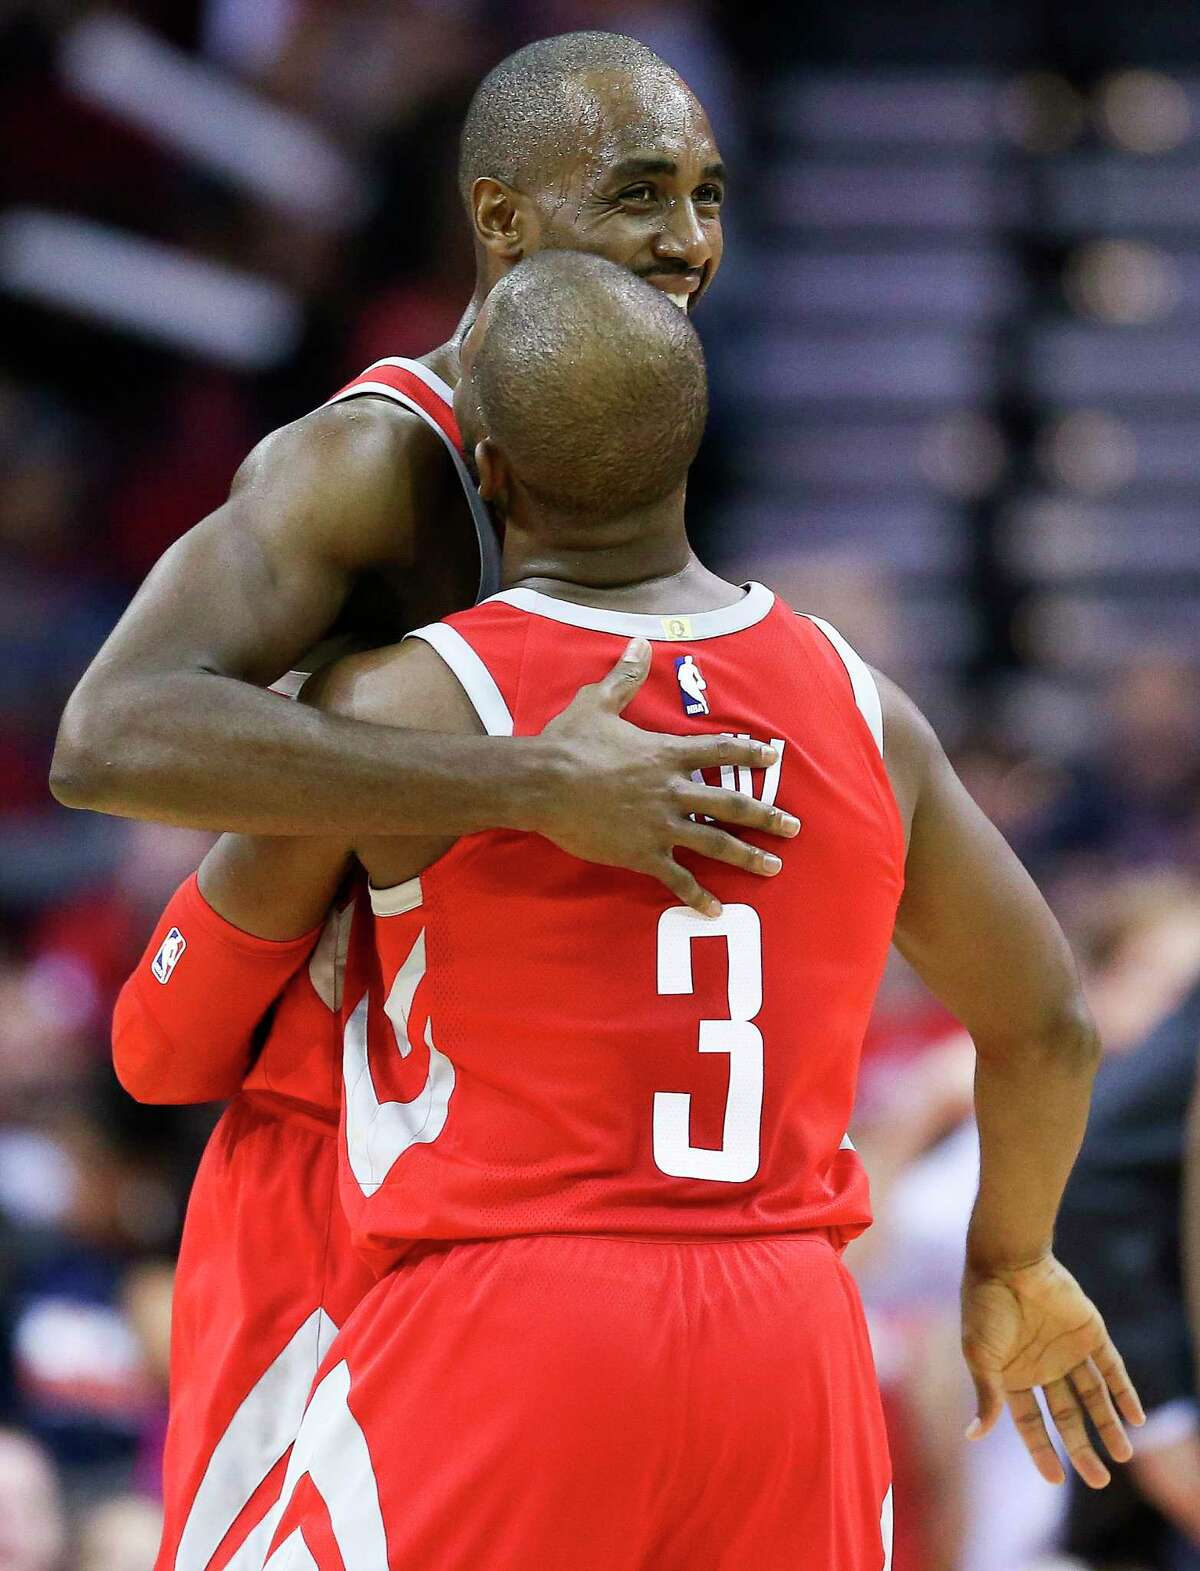 Houston Rockets forward Luc Mbah a Moute, top, hugs Chris Paul during a timeout during the second half of an NBA basketball game against the Denver Nuggets, Wednesday, Nov. 22, 2017, in Houston. Houston won the game 125-95. (AP Photo/Eric Christian Smith)